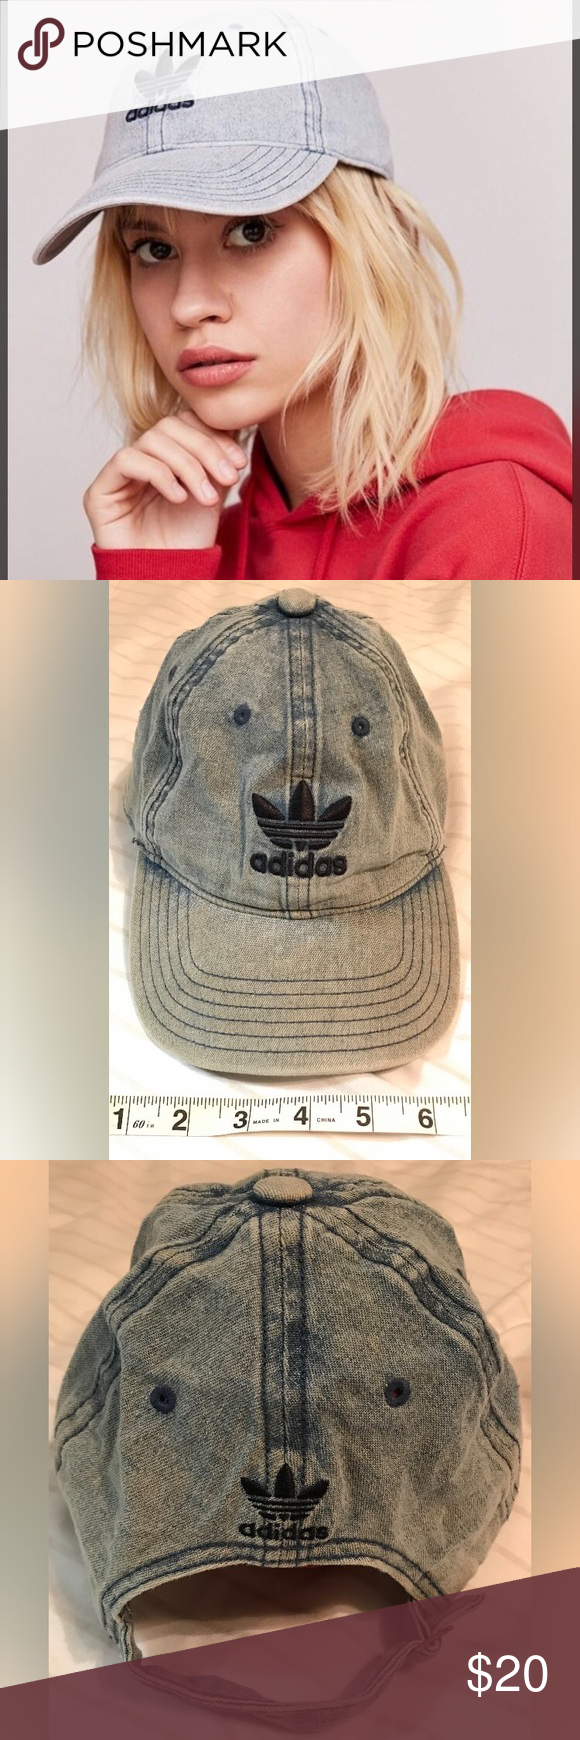 e72c70bb Blue AcidWash ADIDAS Original Relaxed Treifoils Denim Acid Wash ADIDAS  Original Relaxed Treifoils baseball cap. Adjustable strap. Excellent  condition.